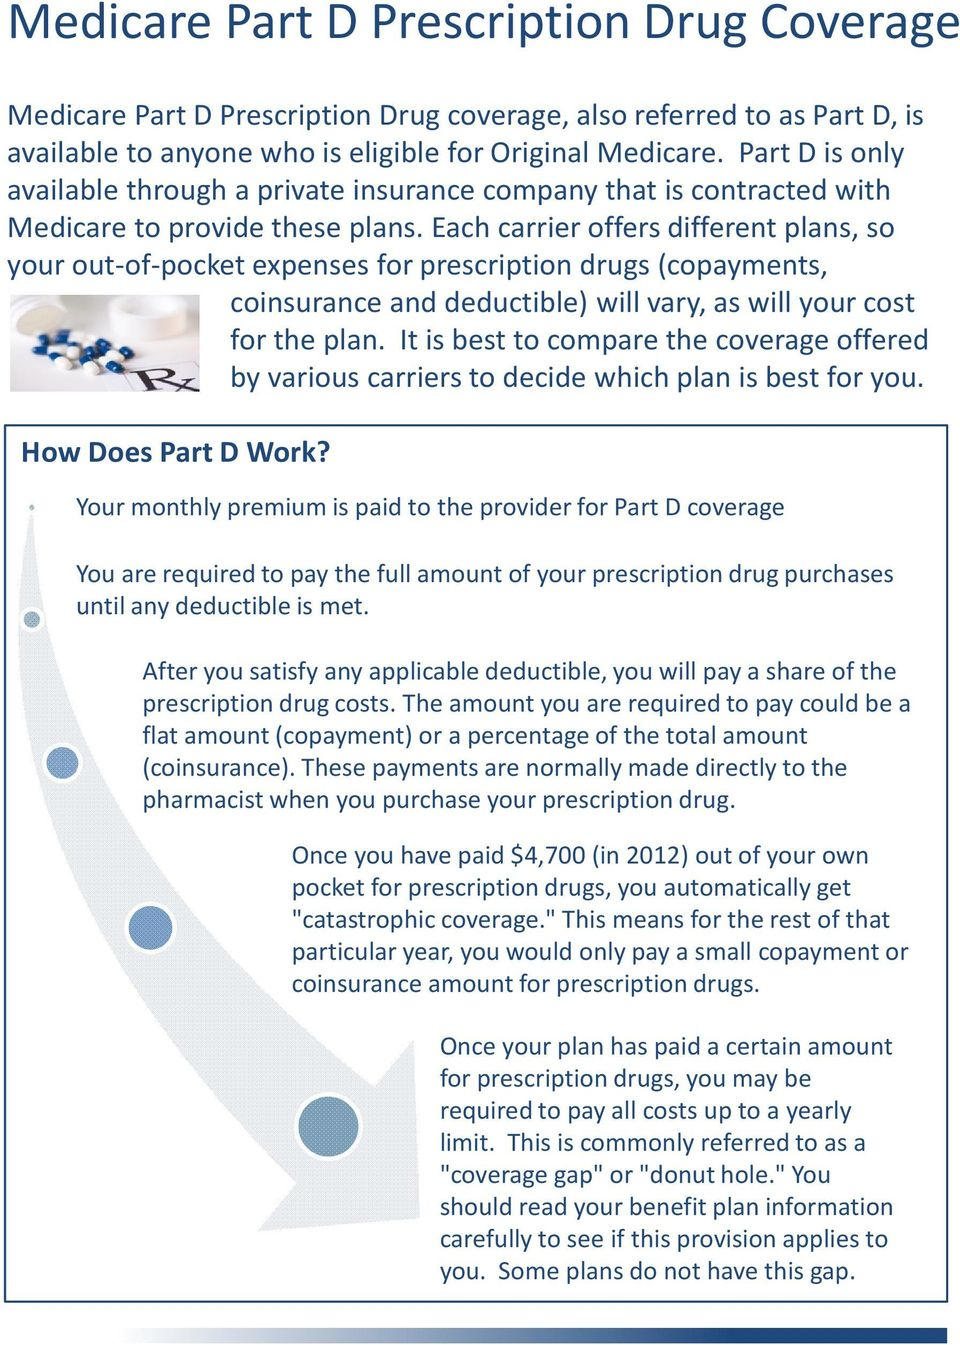 Each carrier offers different plans, so your out-of-pocket expenses for prescription drugs (copayments, coinsurance and deductible) will vary, as will your cost for the plan.